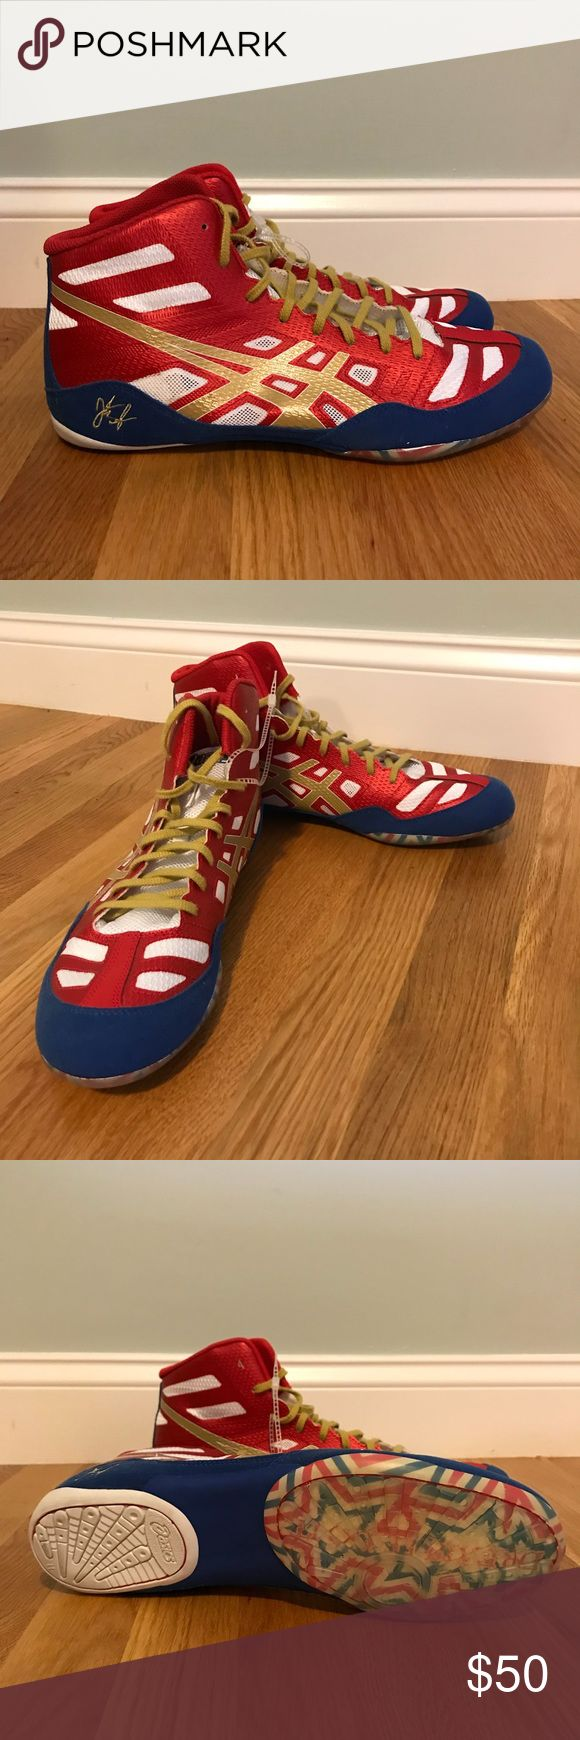 Limited edition Asics shoes Asics JB Elite wrestling/boxing shoes. Limited edition colors classic red, blue, white and gold. Spirit sole with gel bottoms. Extremely lightweight. Based on world and Olympic champion Jordan Burroughs.  Never been worn - Perfect Condition! Asics Shoes Athletic Shoes